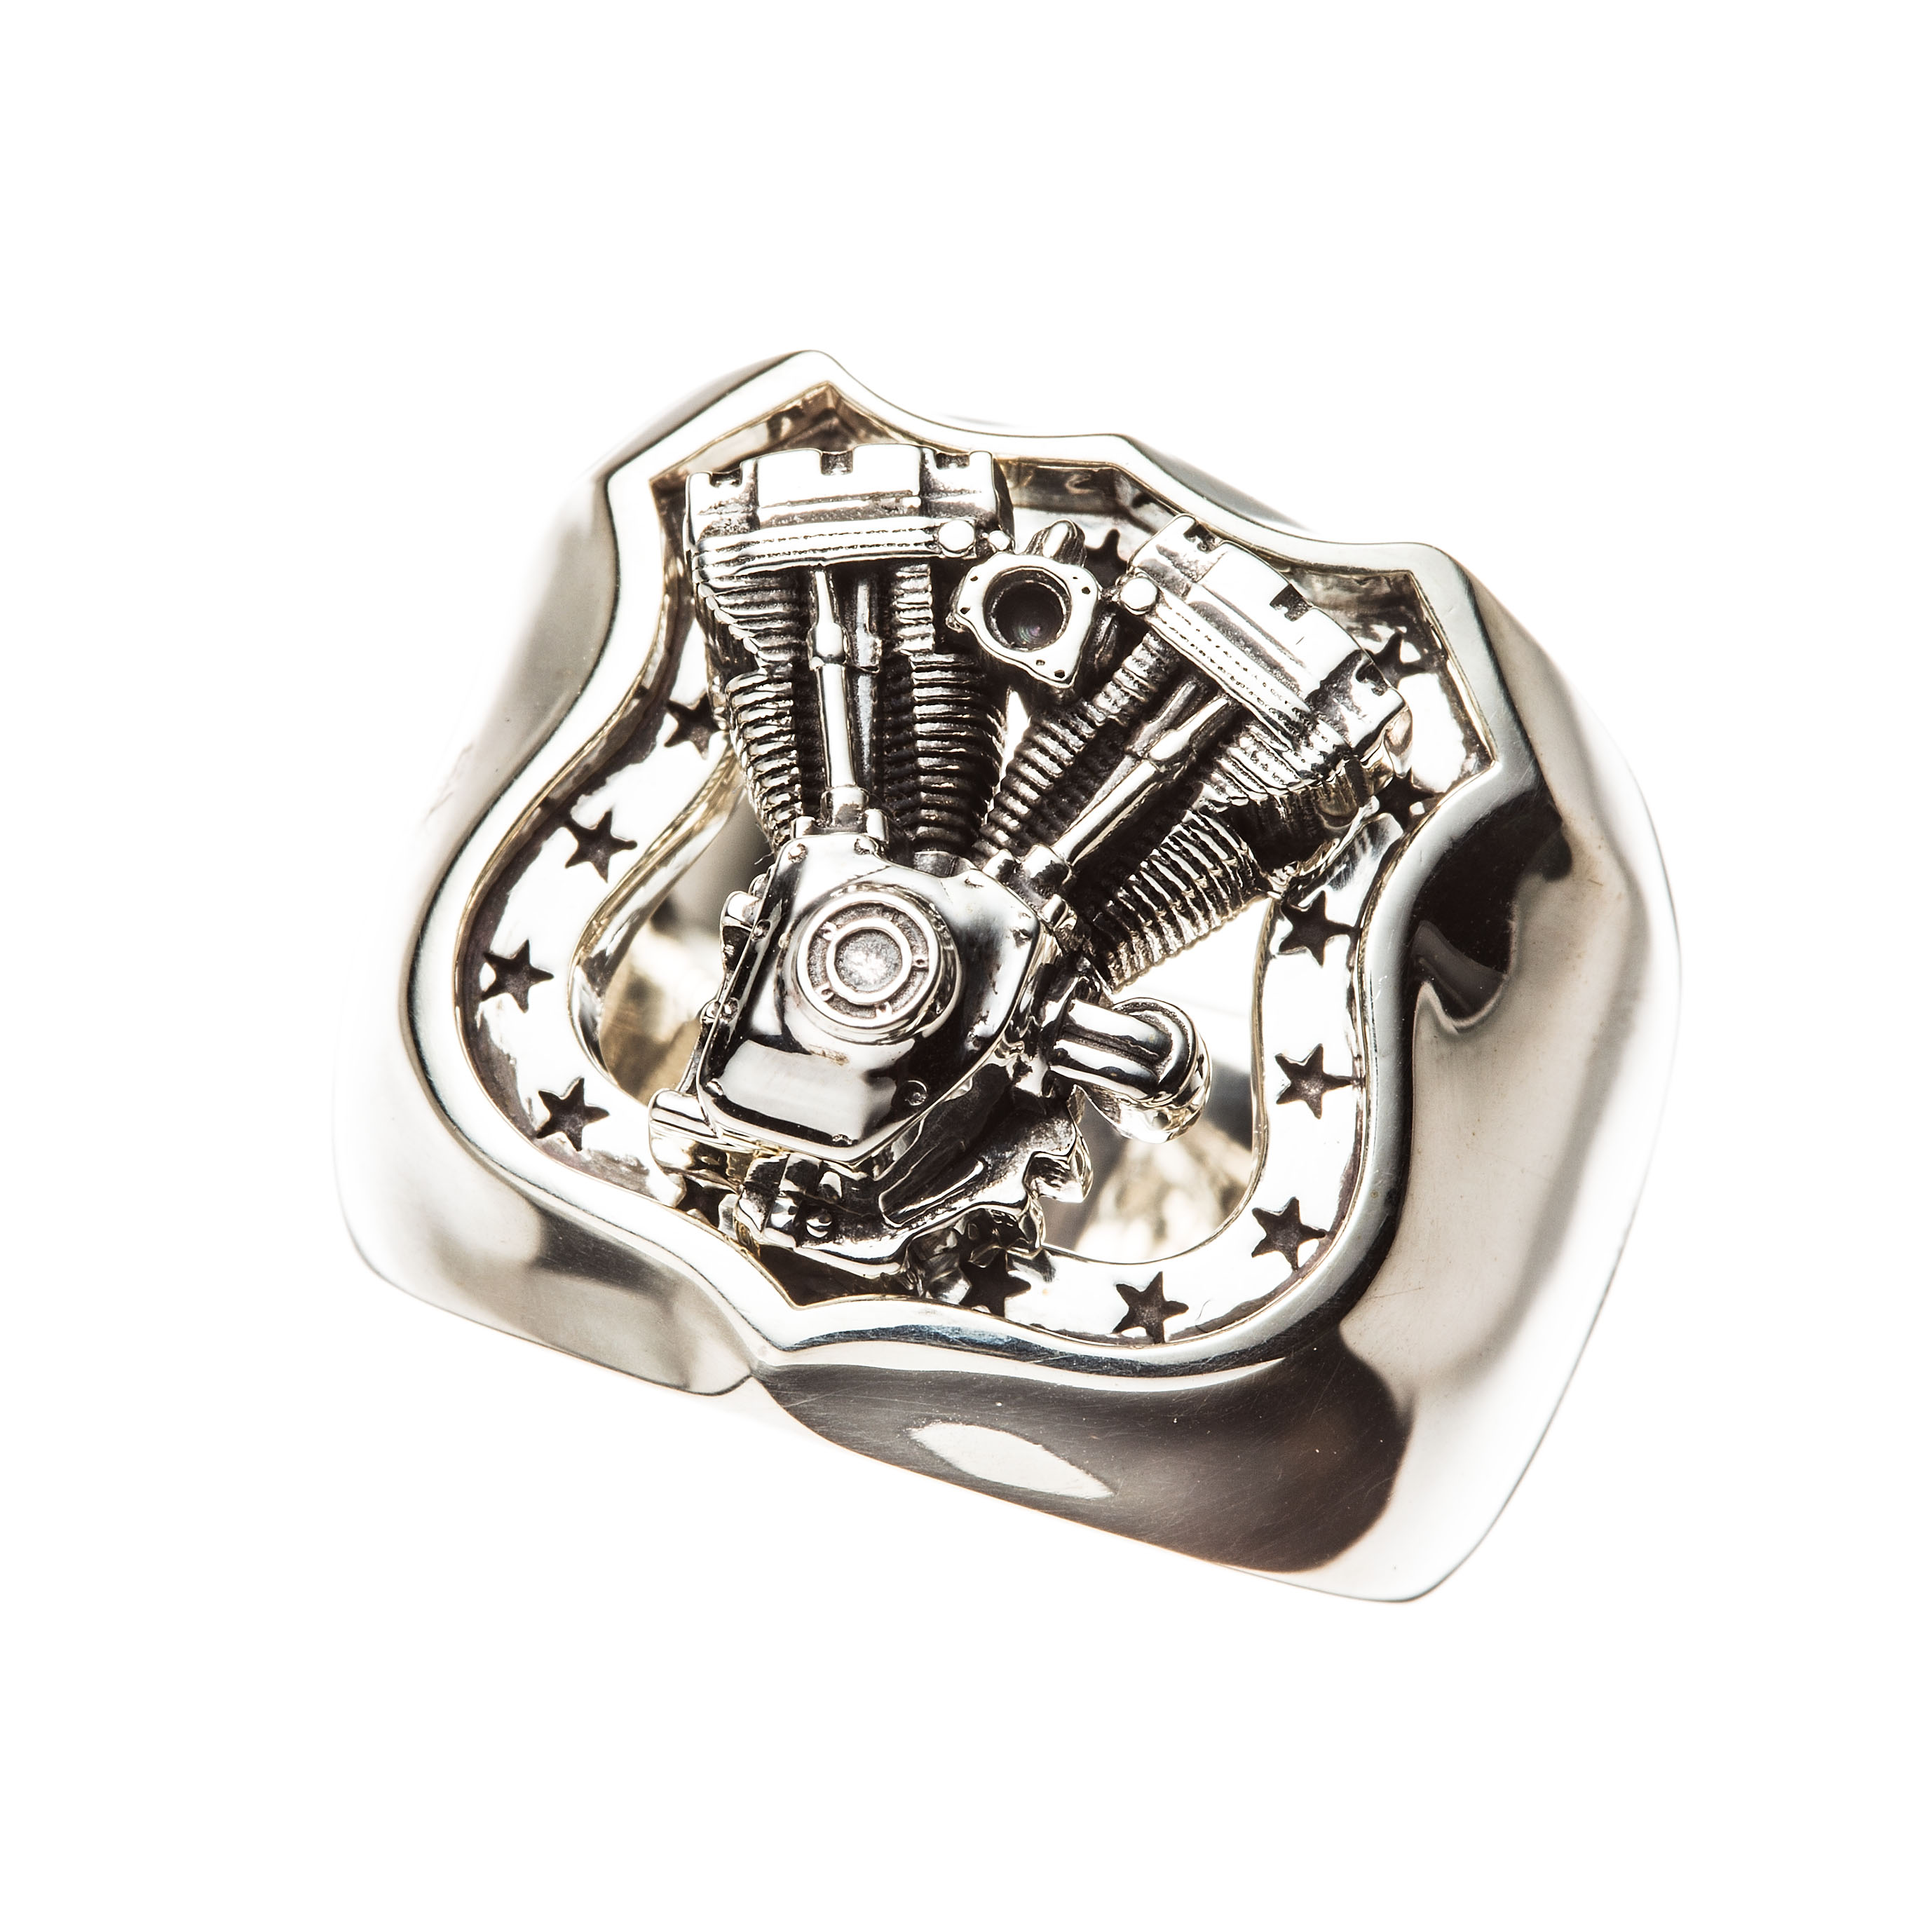 TWINCAM ENGINE RING